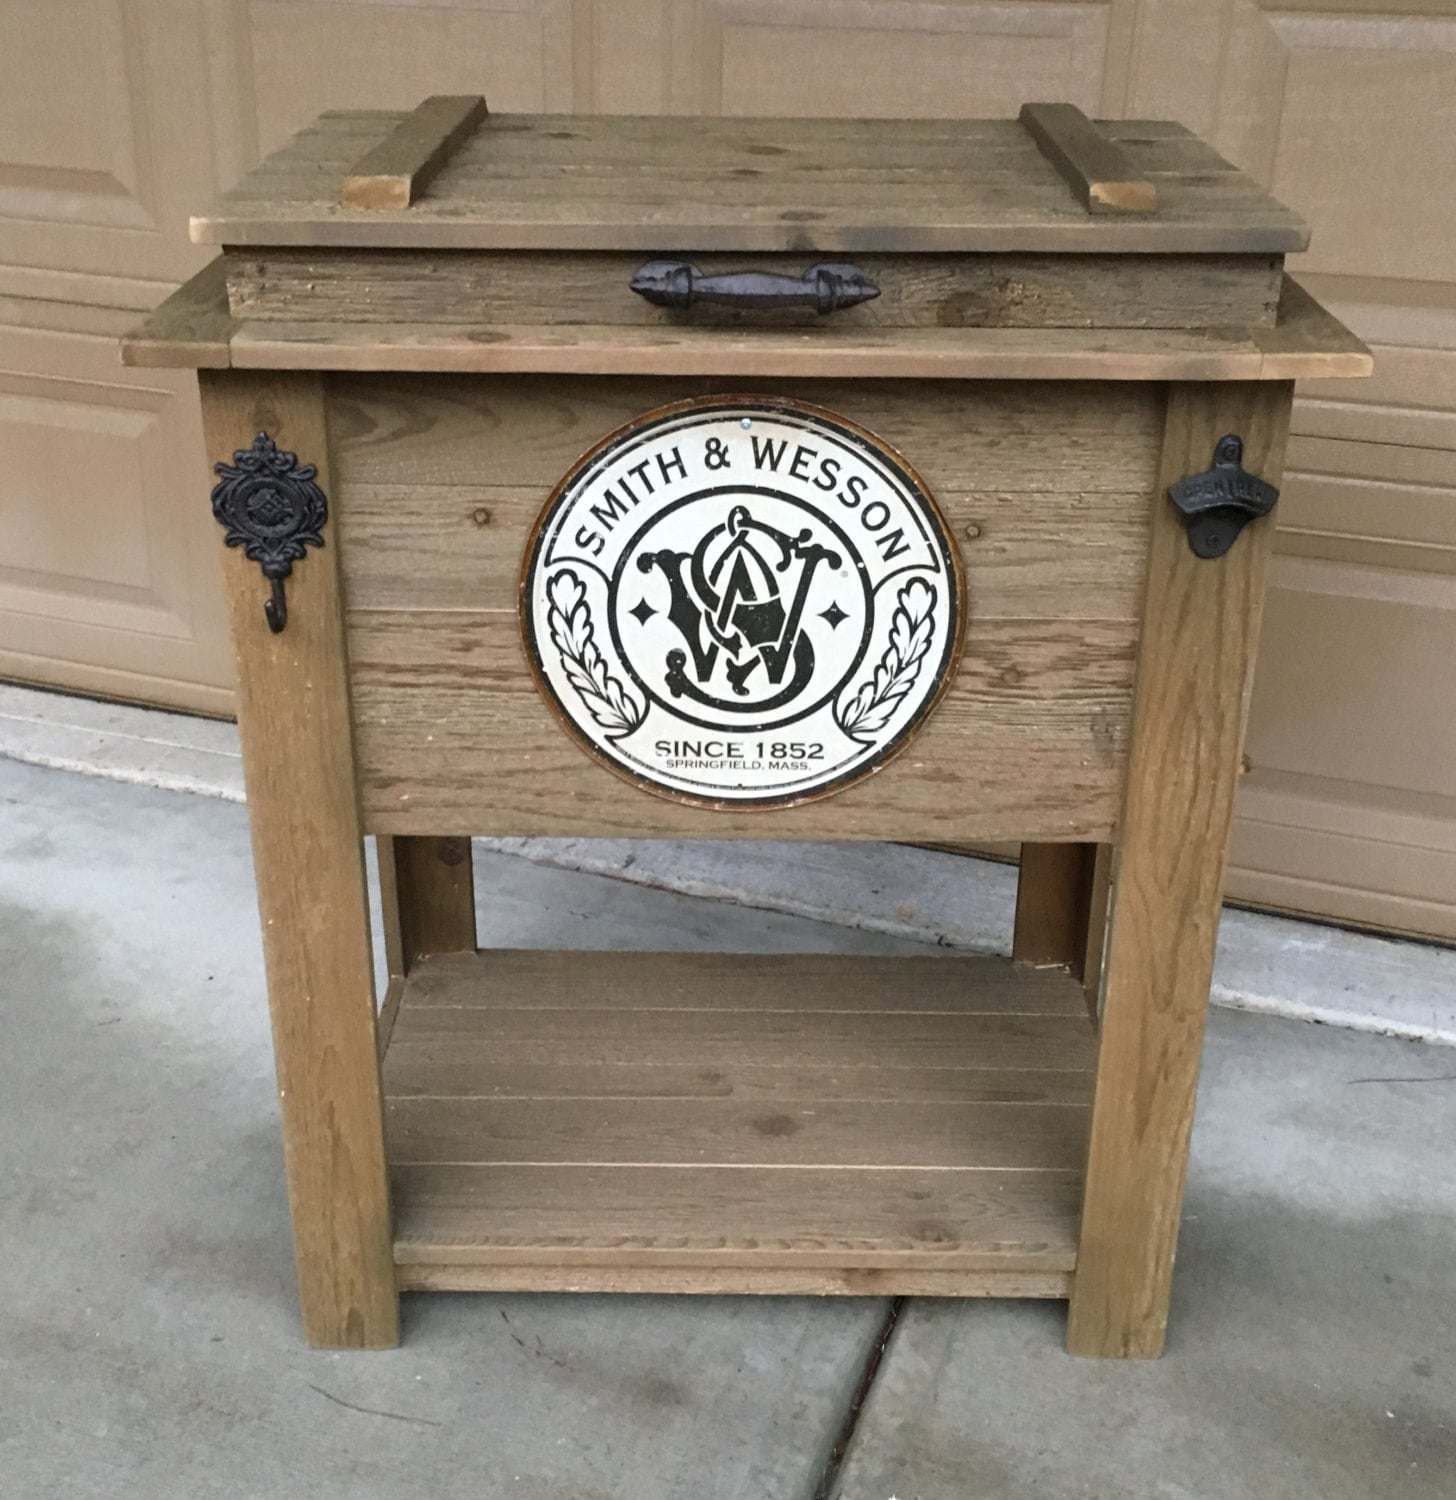 Rustic Wooden Cooler is Great for a Man Cave Outdoor Bar Cart